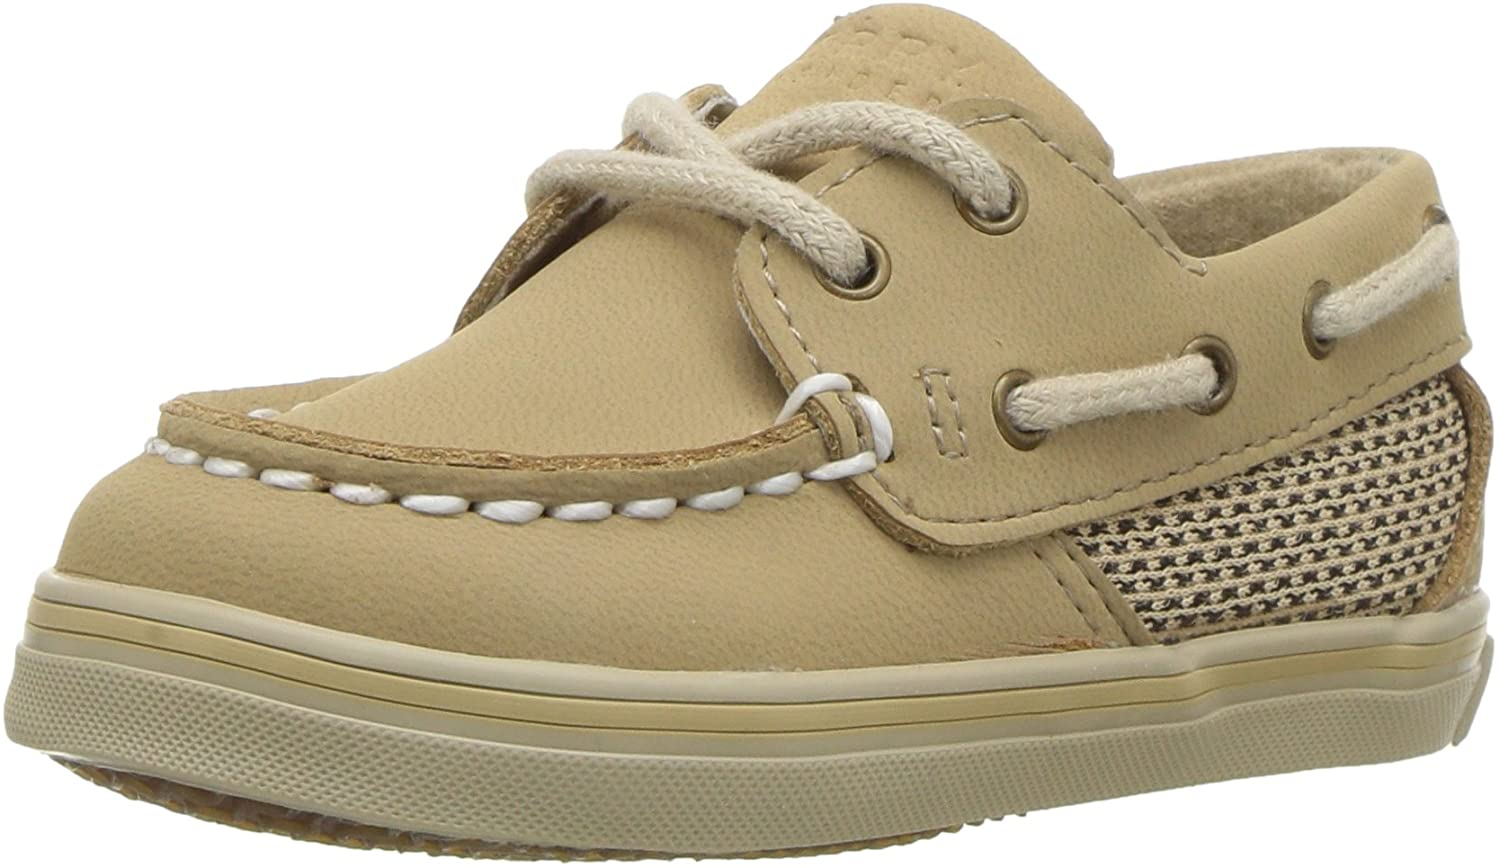 Sperry Top-Sider Intrepid Shipping included Limited price Crib 10 25 Boat Shoe Infant